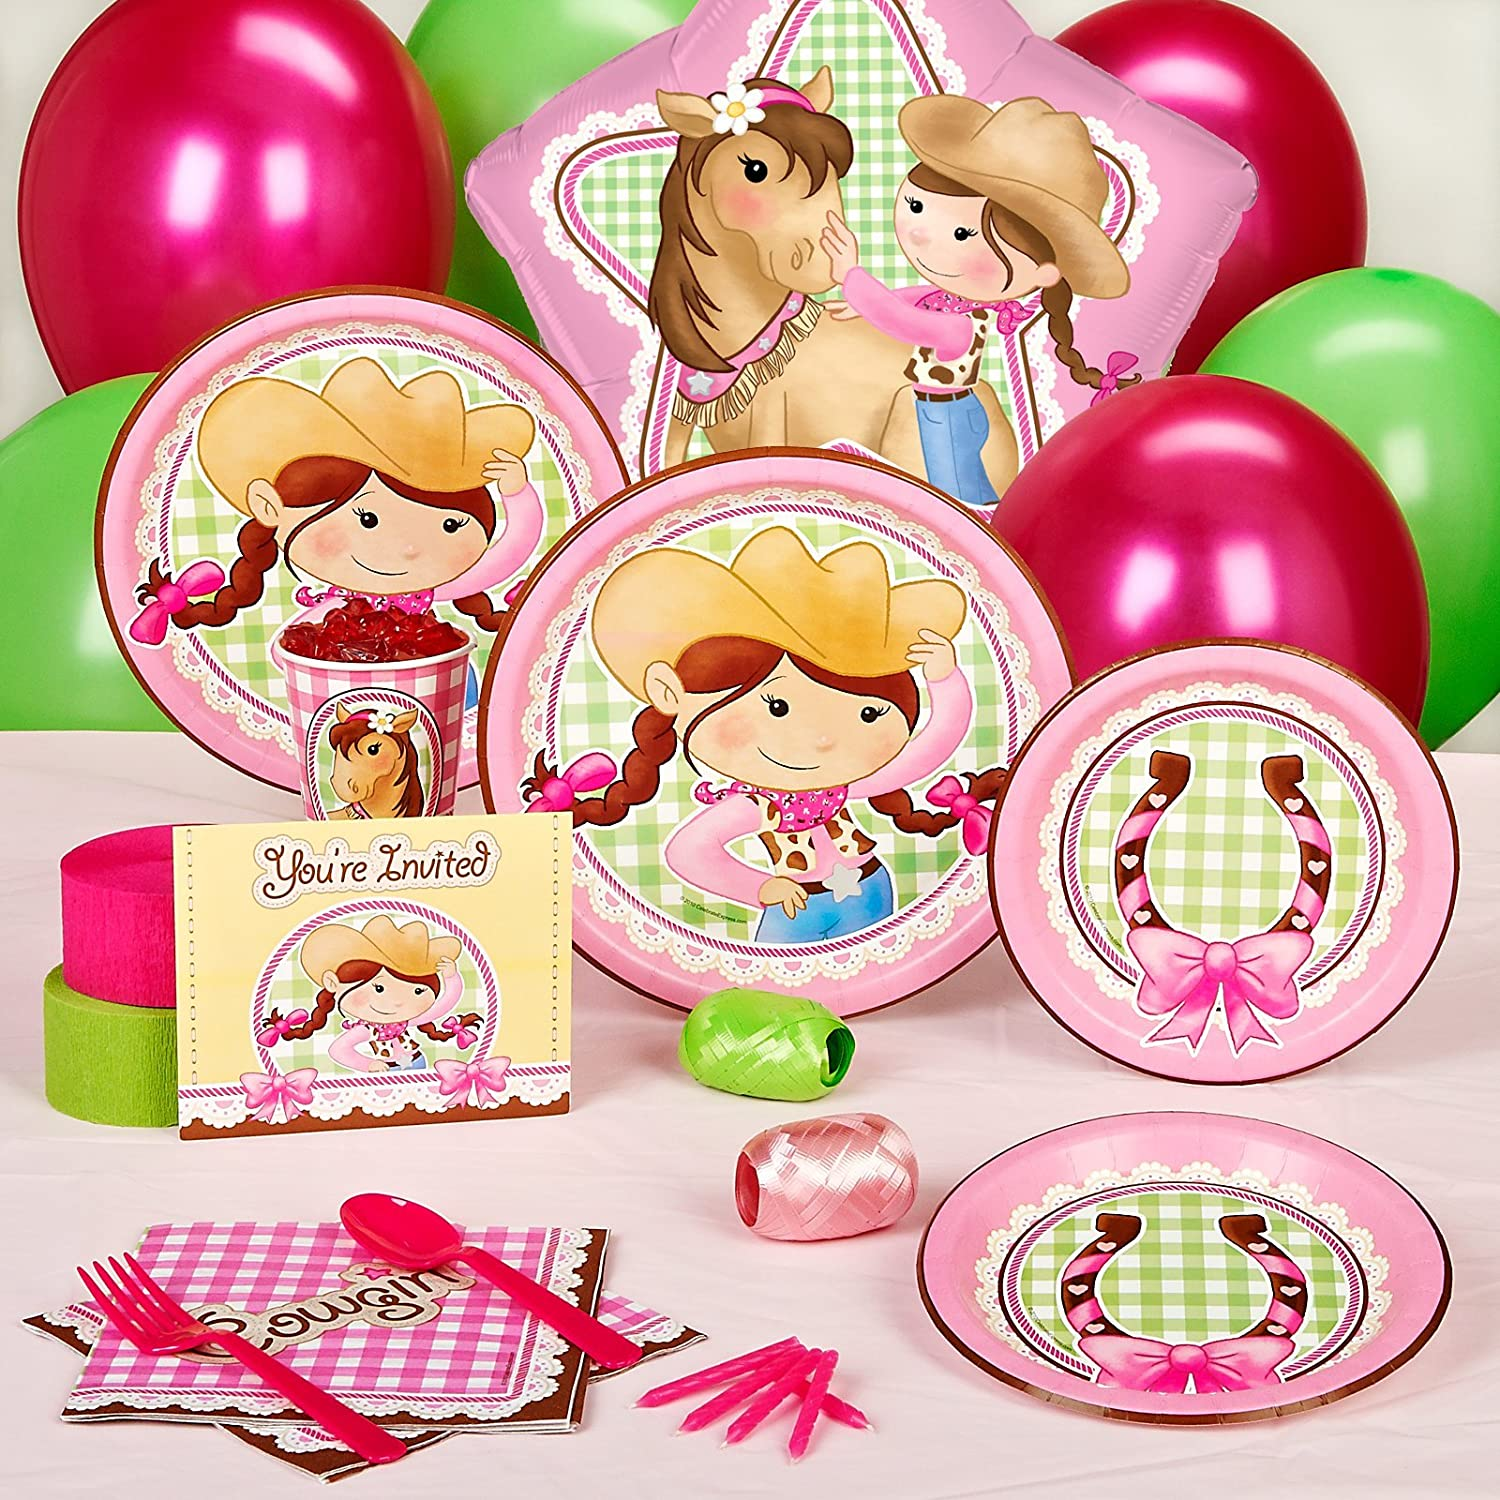 Amazon.com: Pink Cowgirl Party Supplies - Standard Party Pack for ...